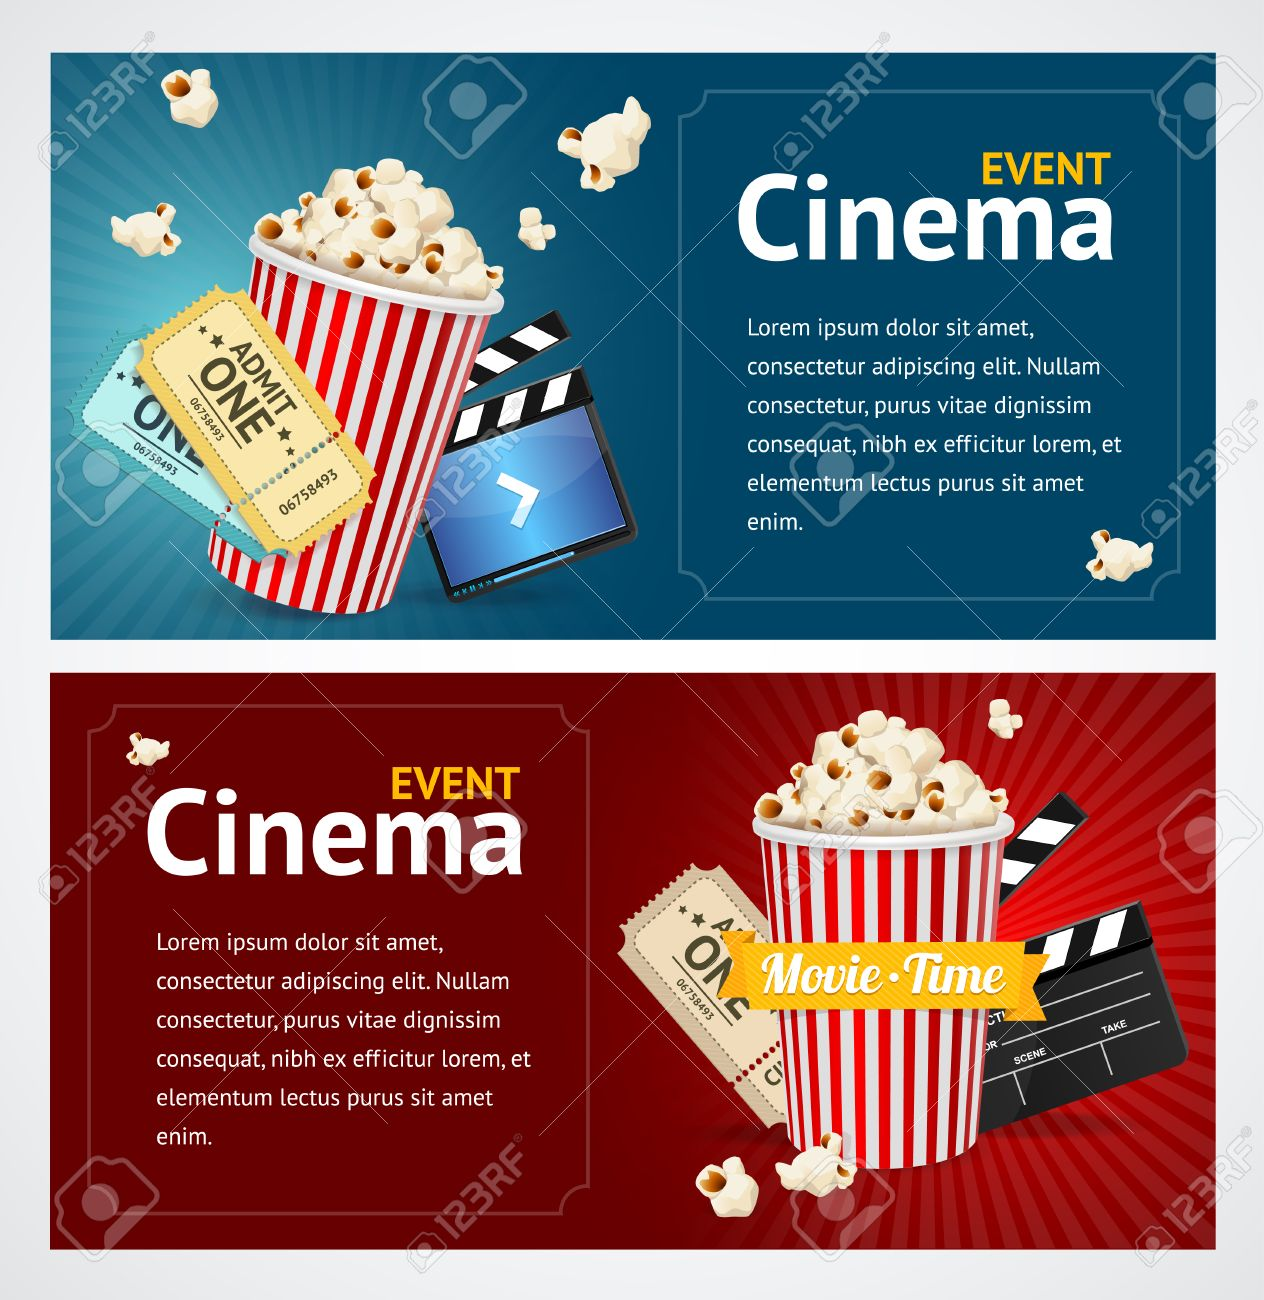 Realistic Cinema Movie Poster Template Horizontal Set Vector Illustration Stock